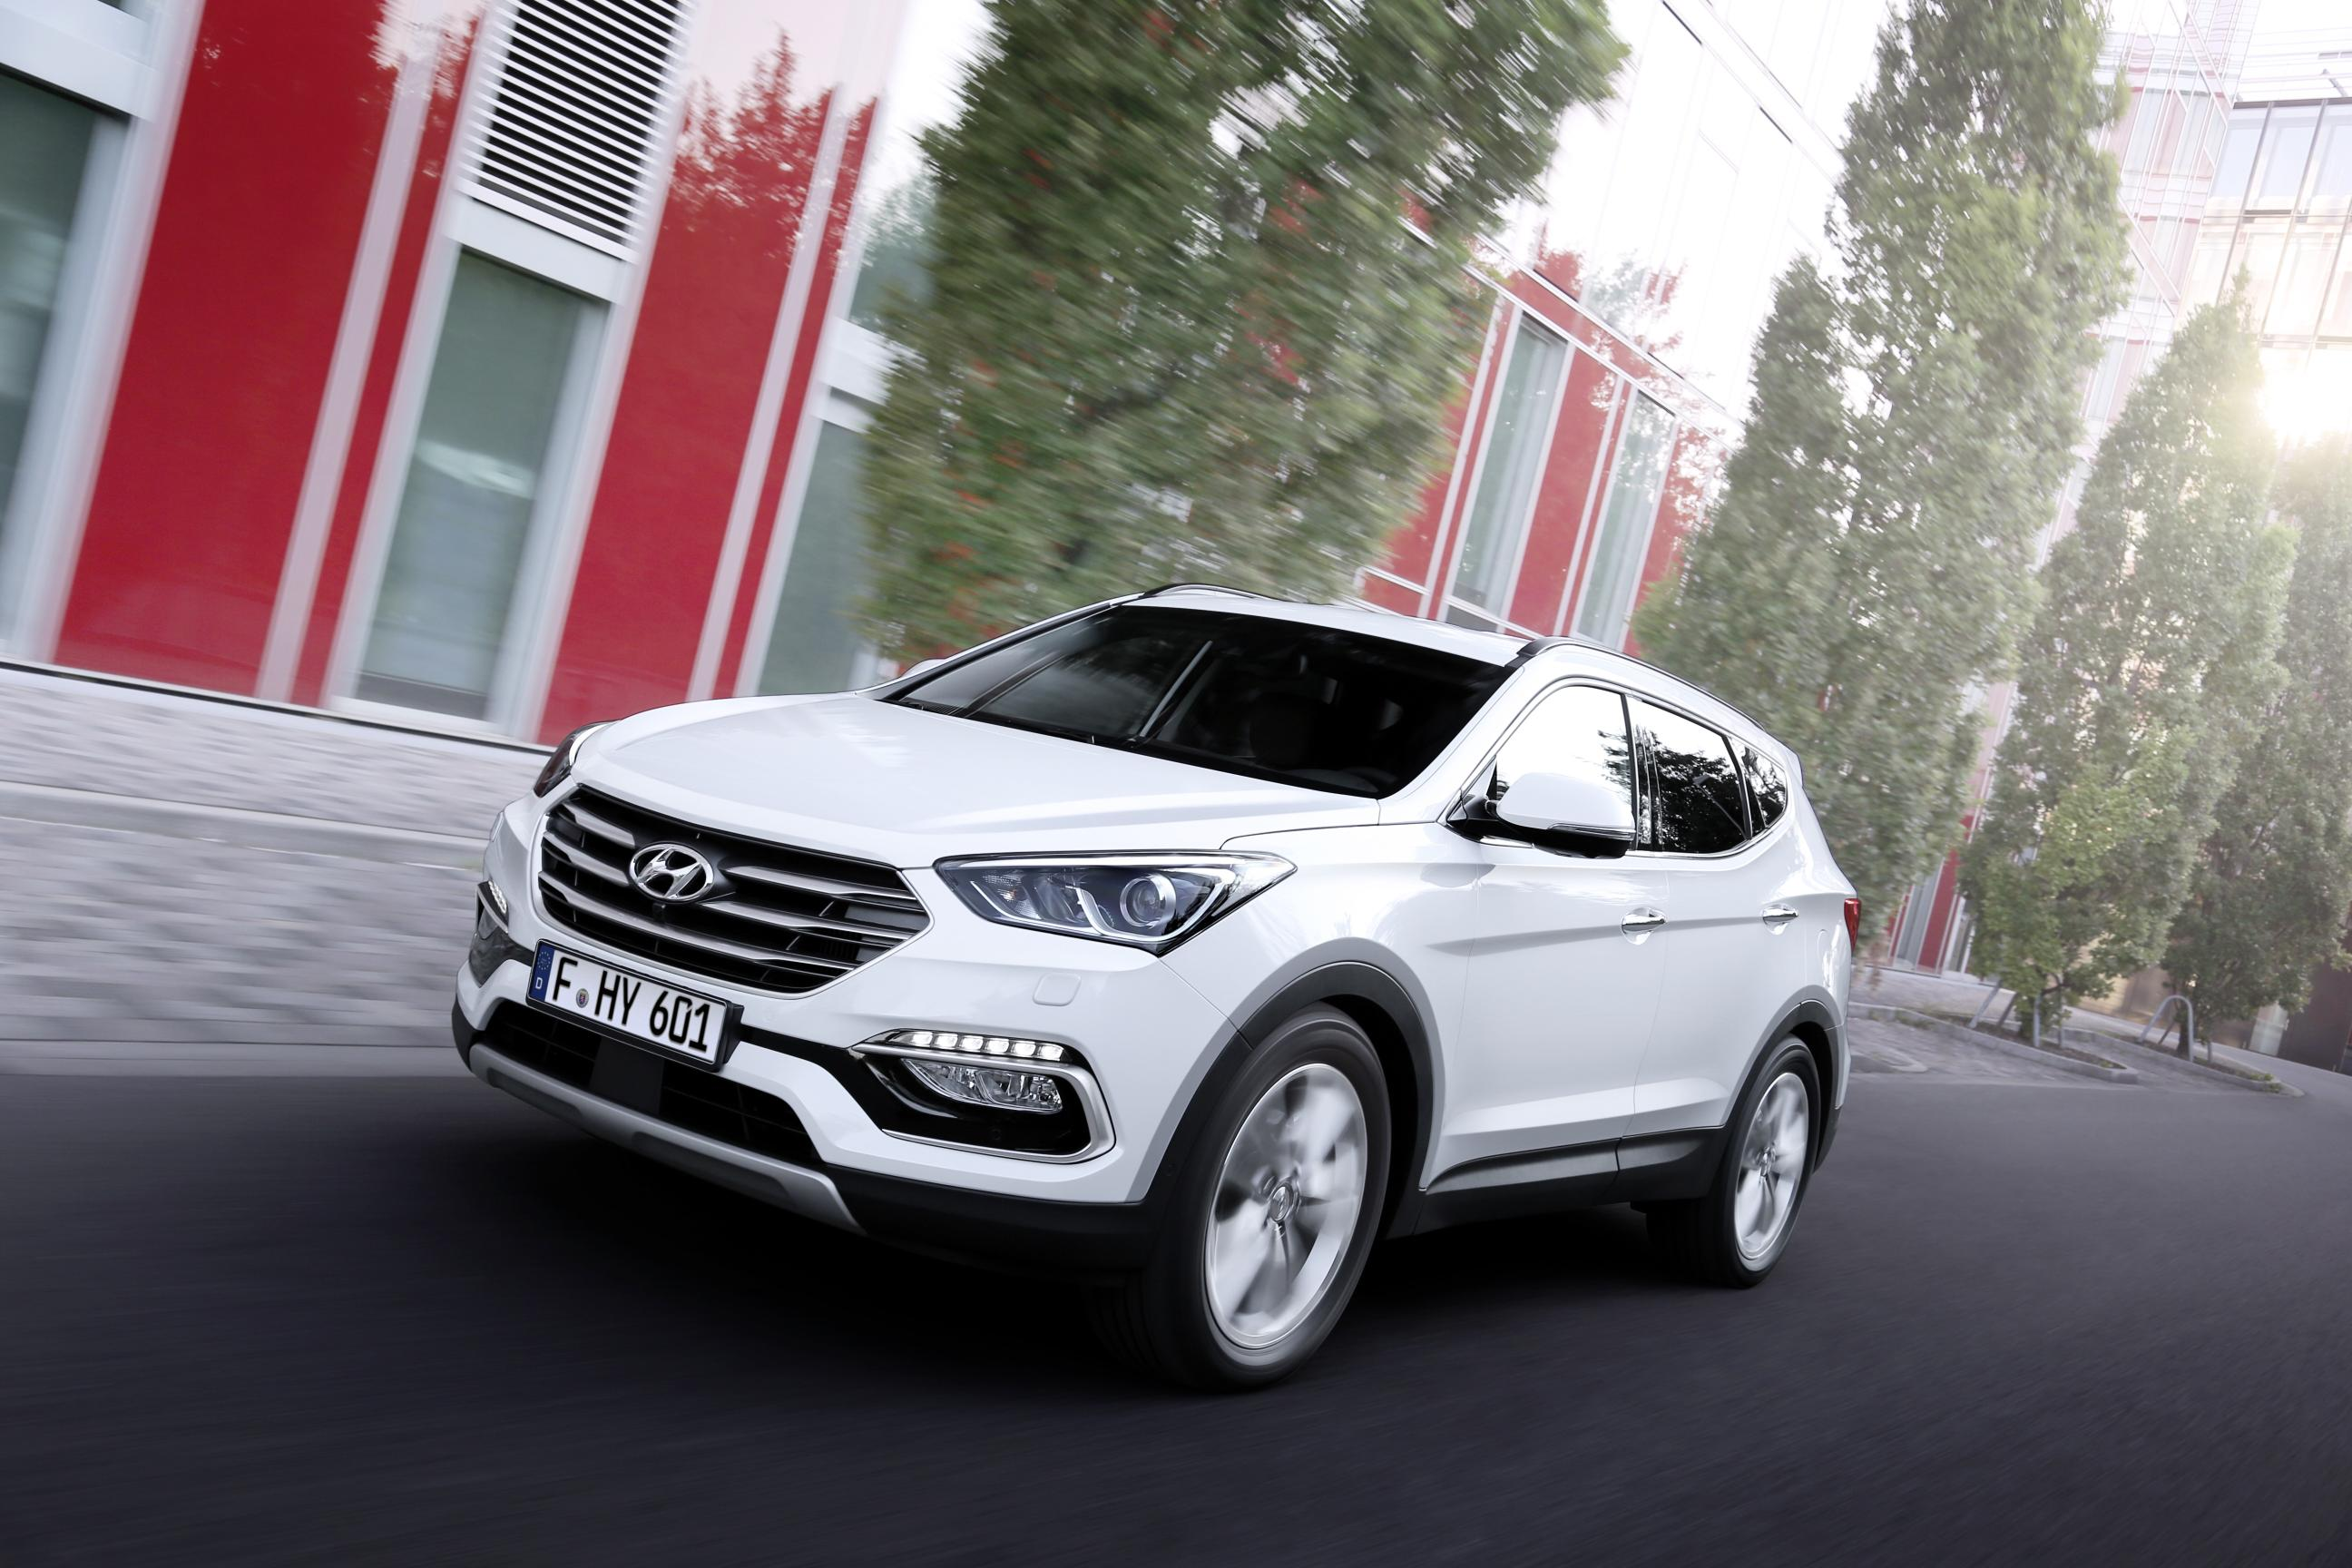 exciting the of has fe hyundai santa launch changes group ffun model used motor s